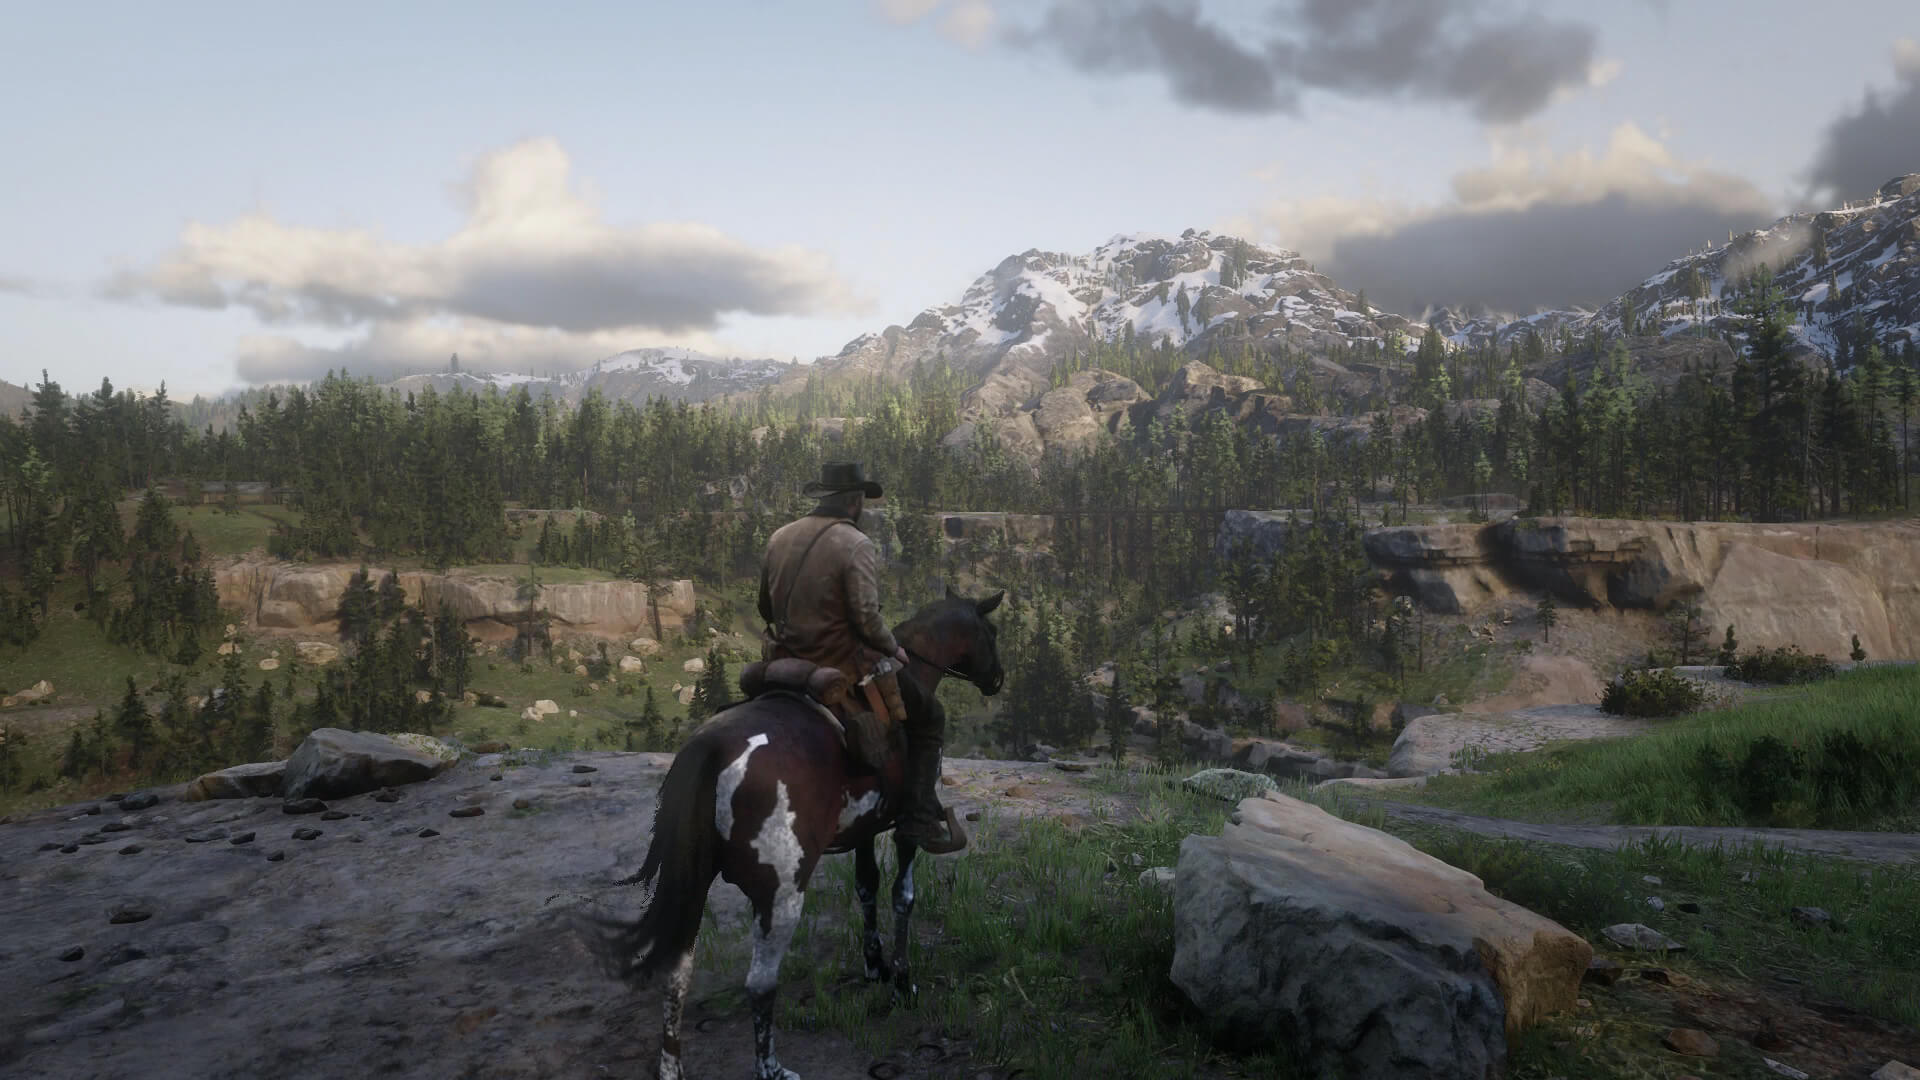 Horse Red Dead Redemption 2 Wallpapers - Top Free Horse ...